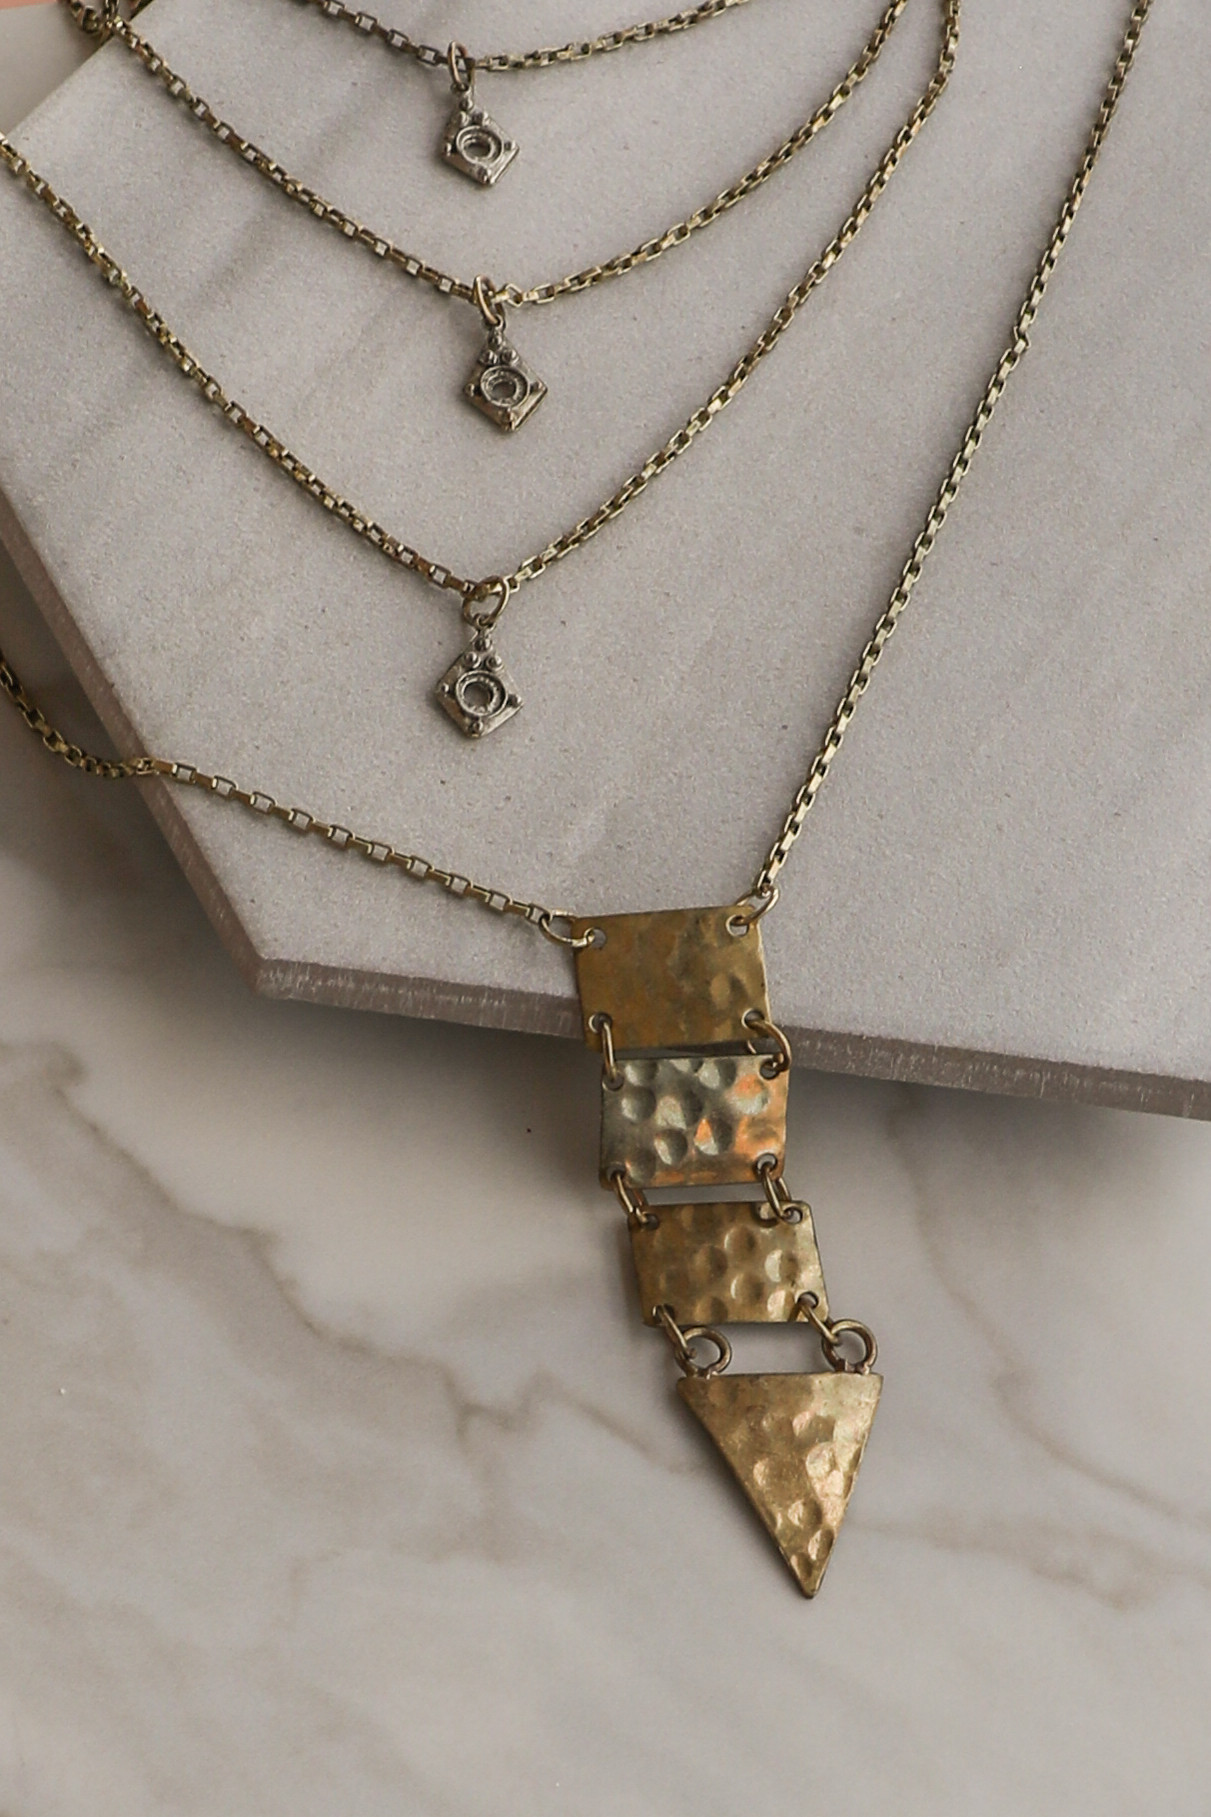 Antique Gold Brass Layered Pendant Necklace